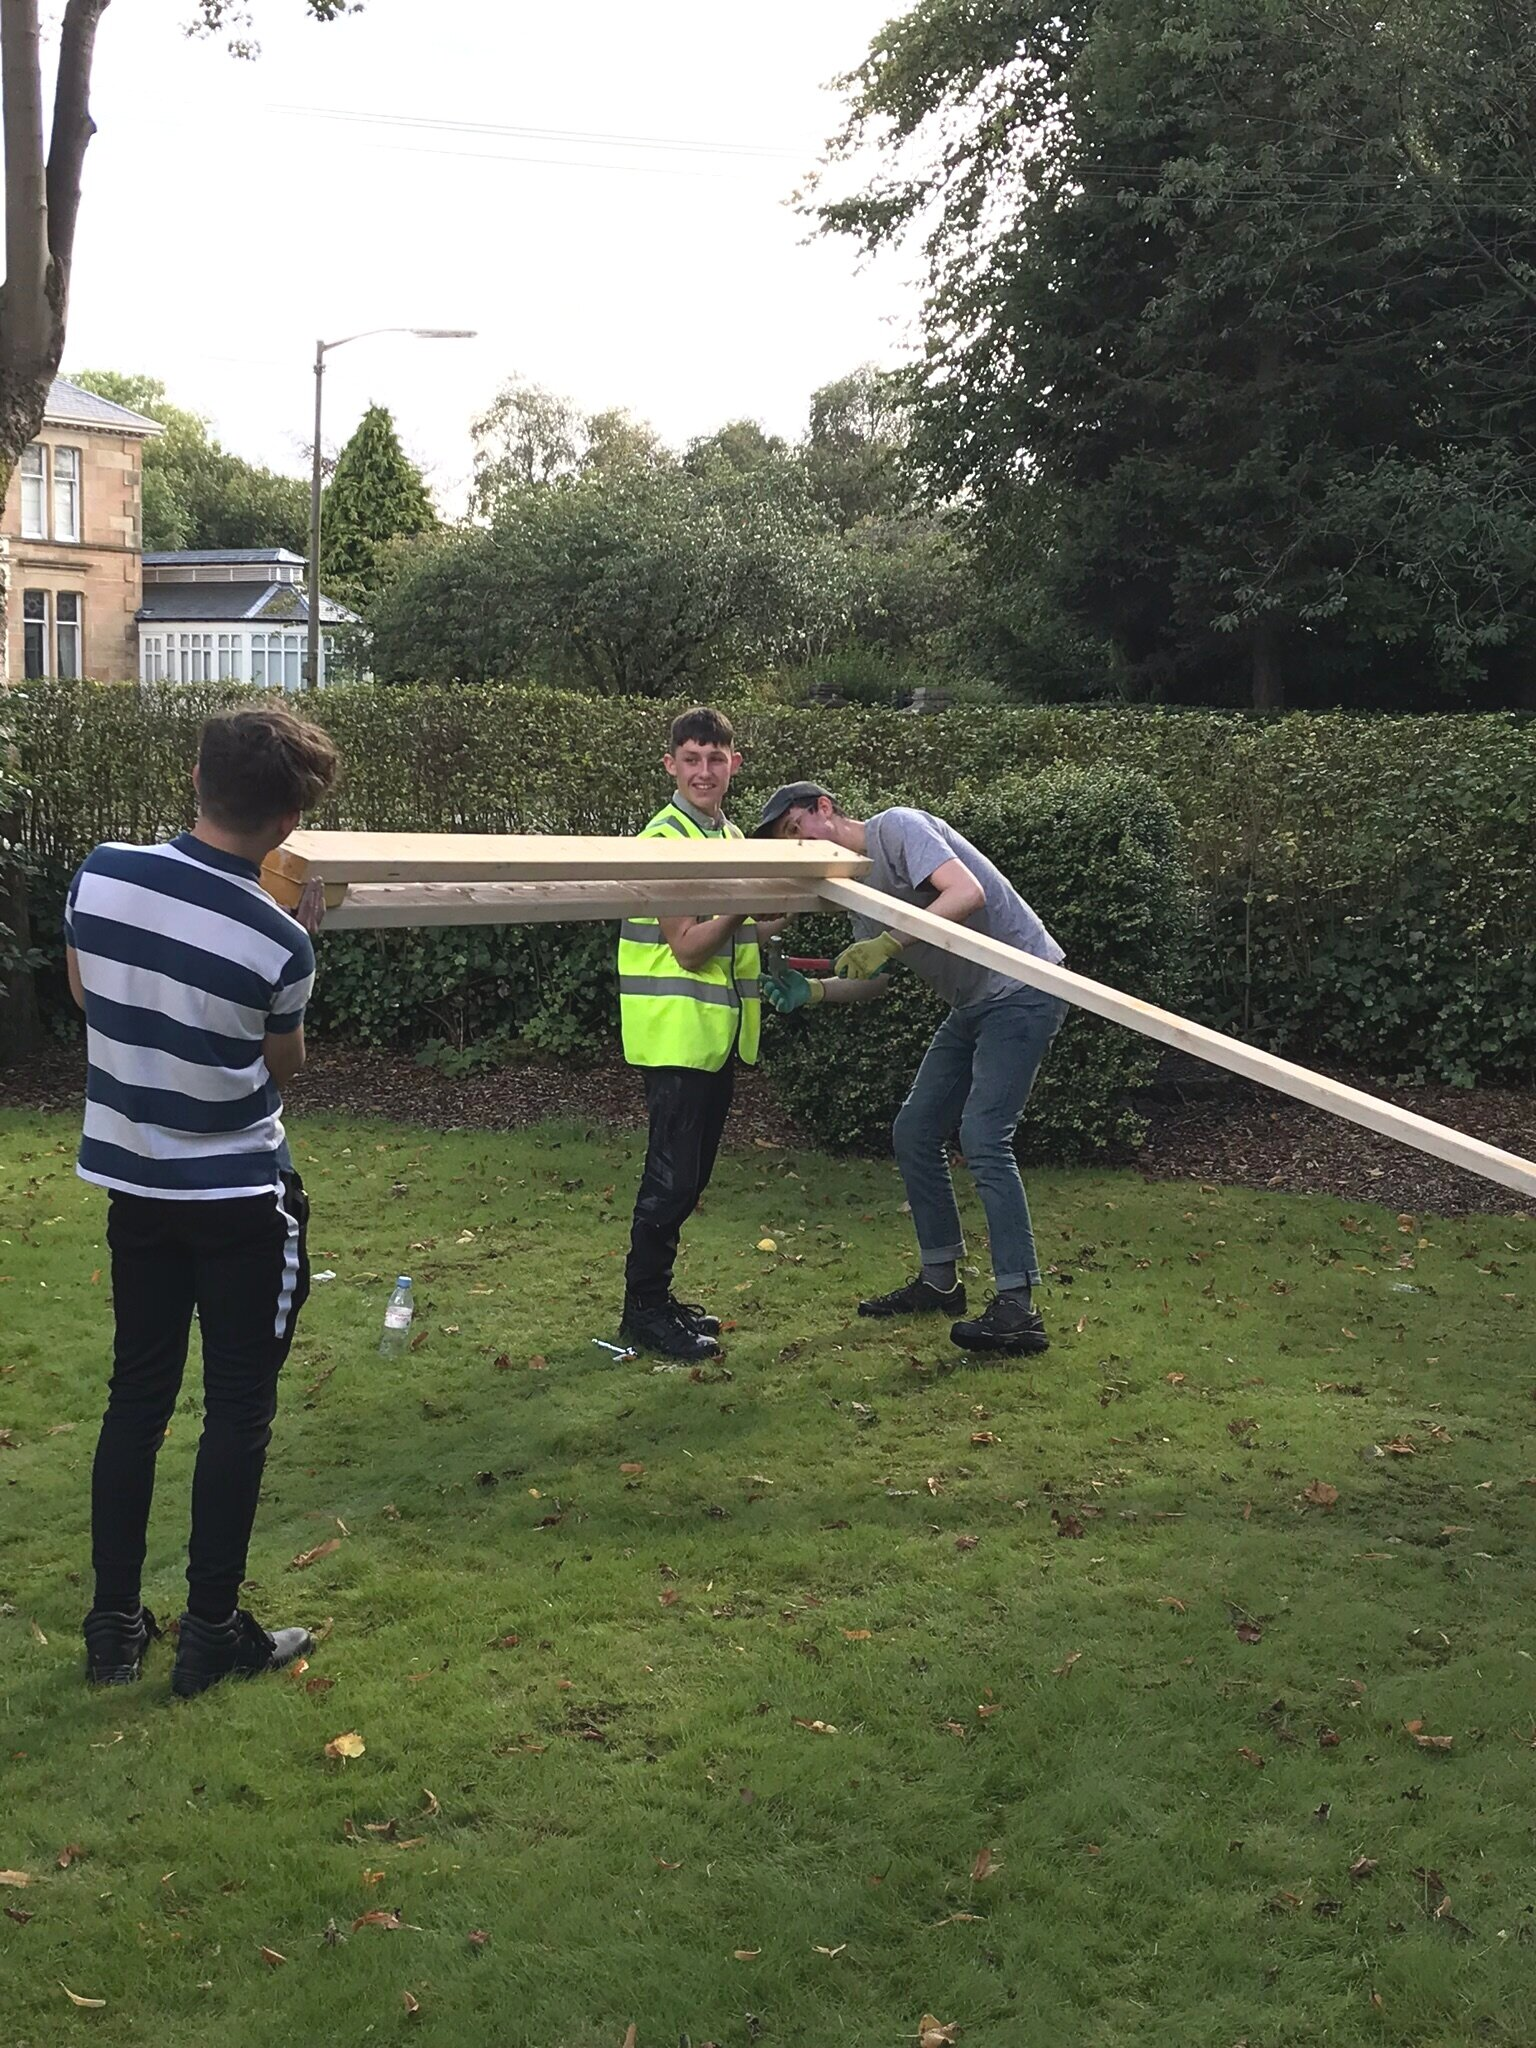 September 2019   This week we welcomed young people from Barnardo's Works to get involved with the Community Classroom. They spent the day assisting with the build, learning about design processes and construction techniques. A greatly inspiring day - thanks to all those involved.